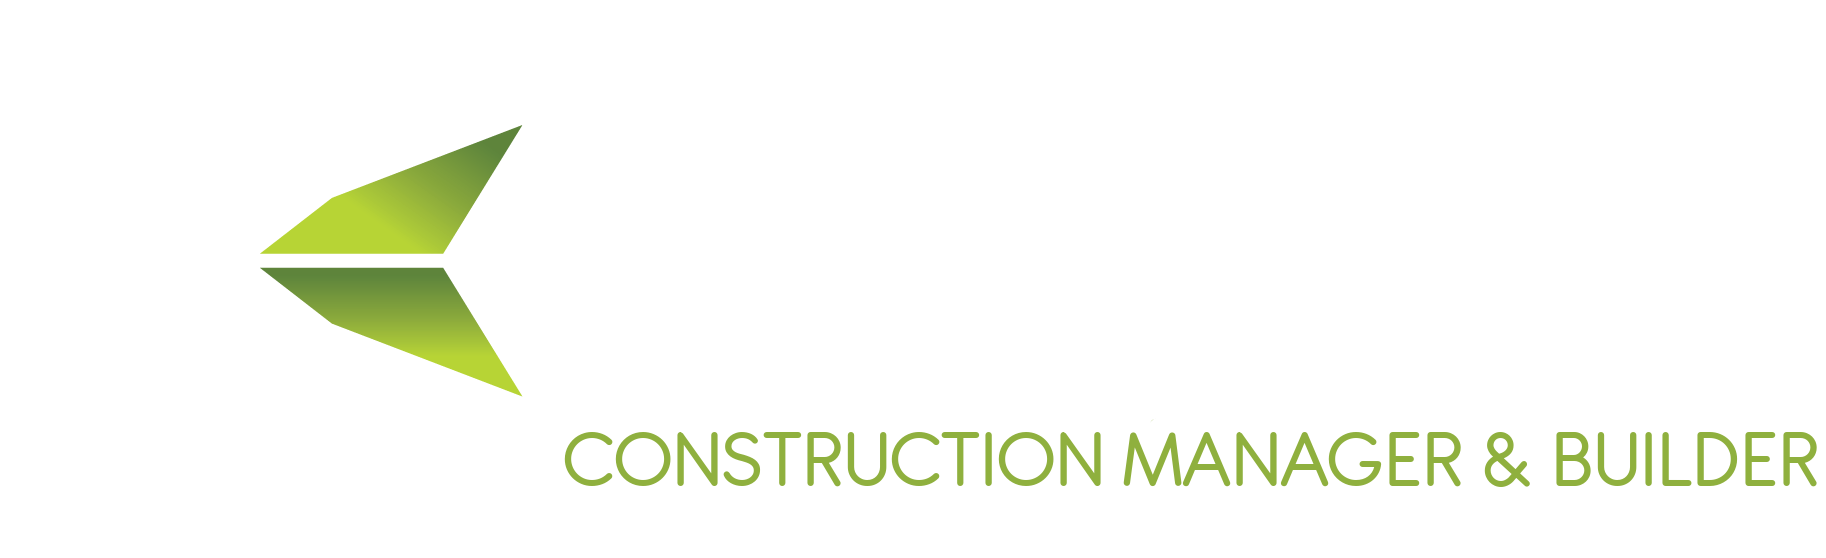 Central Construction Manager & Builder